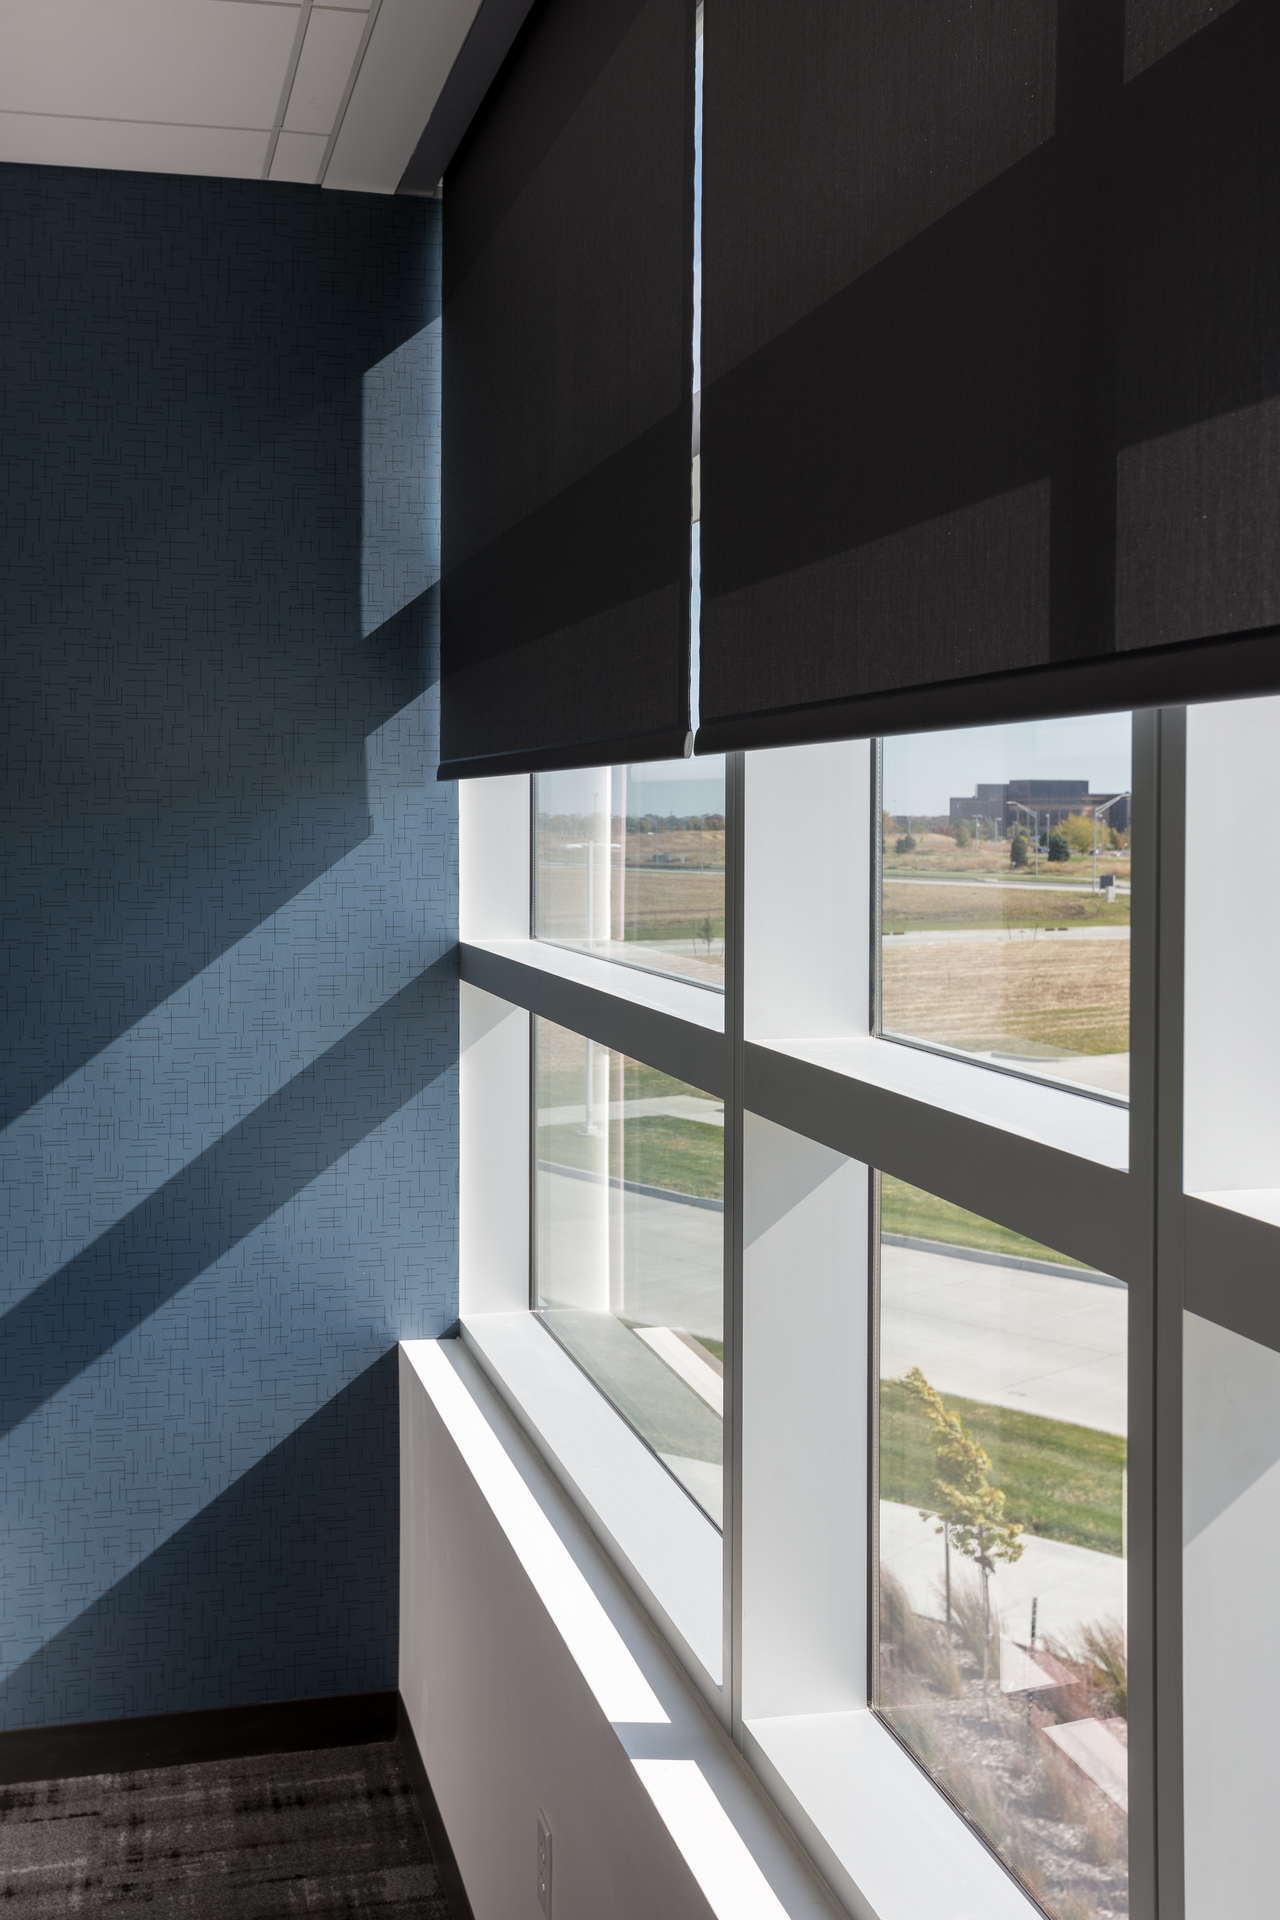 Smart shading systems by Lutron makes darkening a room easy and convenient. Photography by Alex Benge.